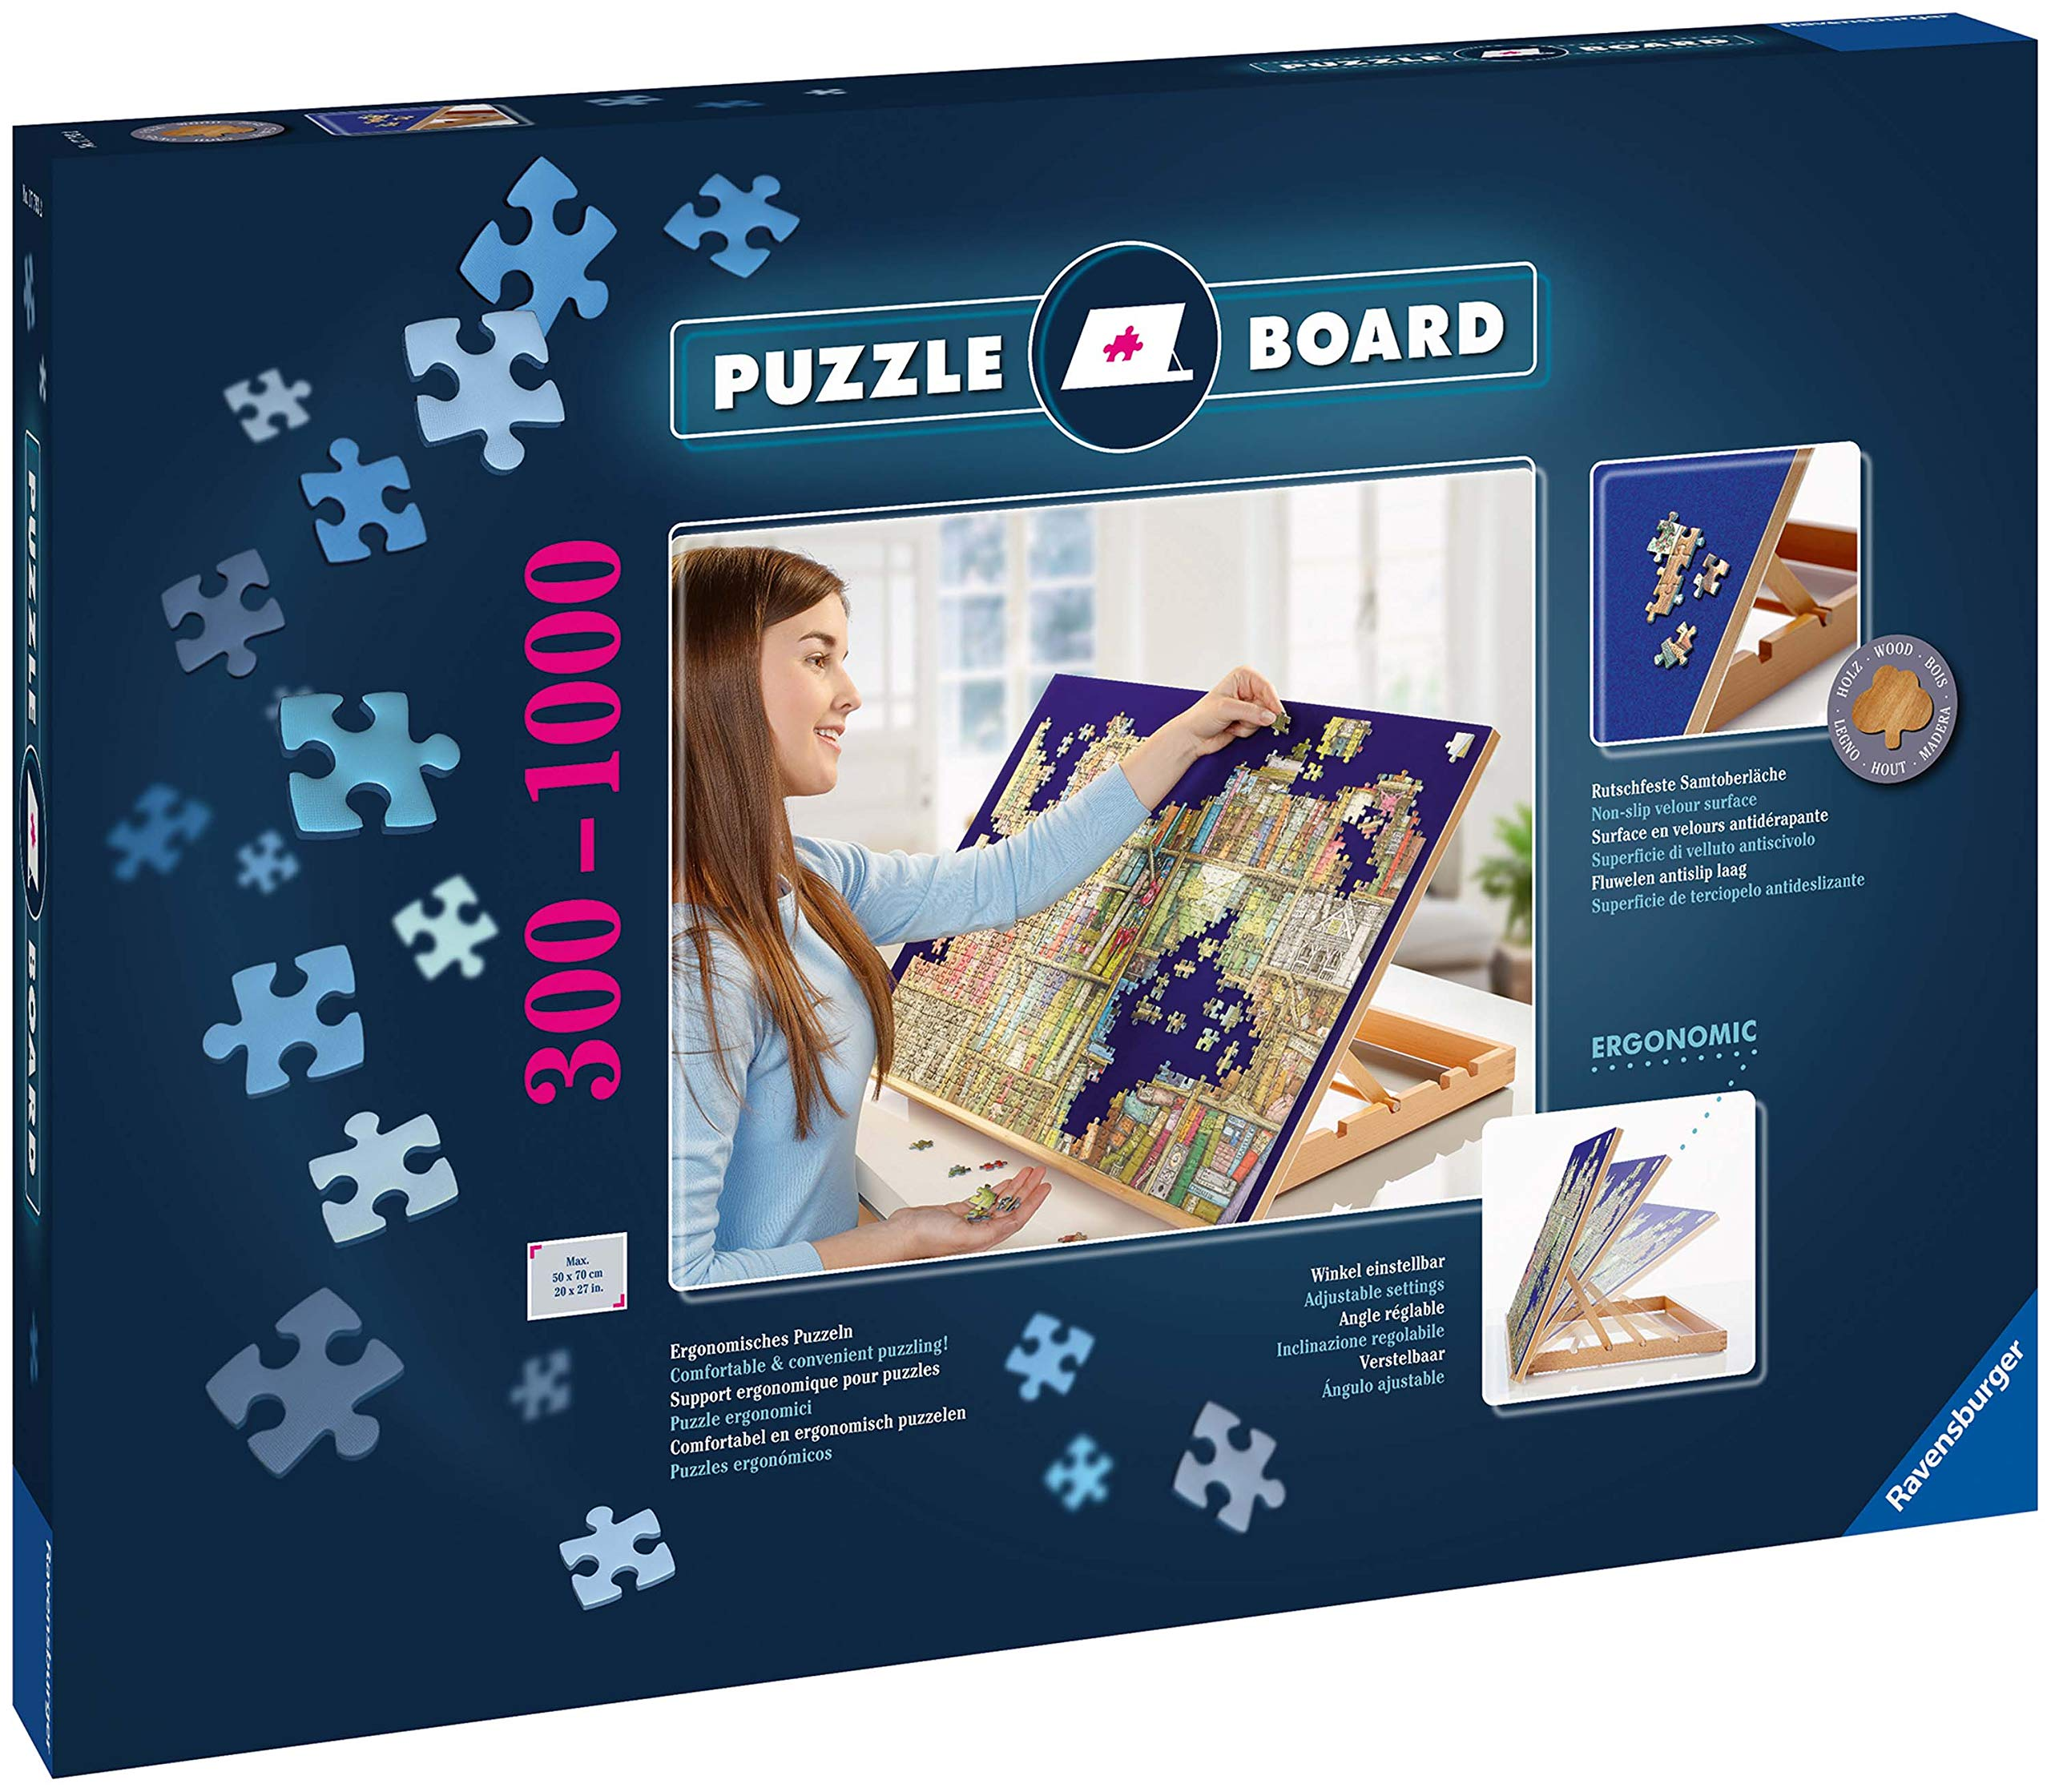 Ravensburger 17973 Tabletop Fold Flat Wooden Puzzle Easel - Non-Slip, Felt Work Surface Puzzle Table Accessory - for Jigsaw Puzzles in Landscape Format up to 1000 Pieces by Ravensburger